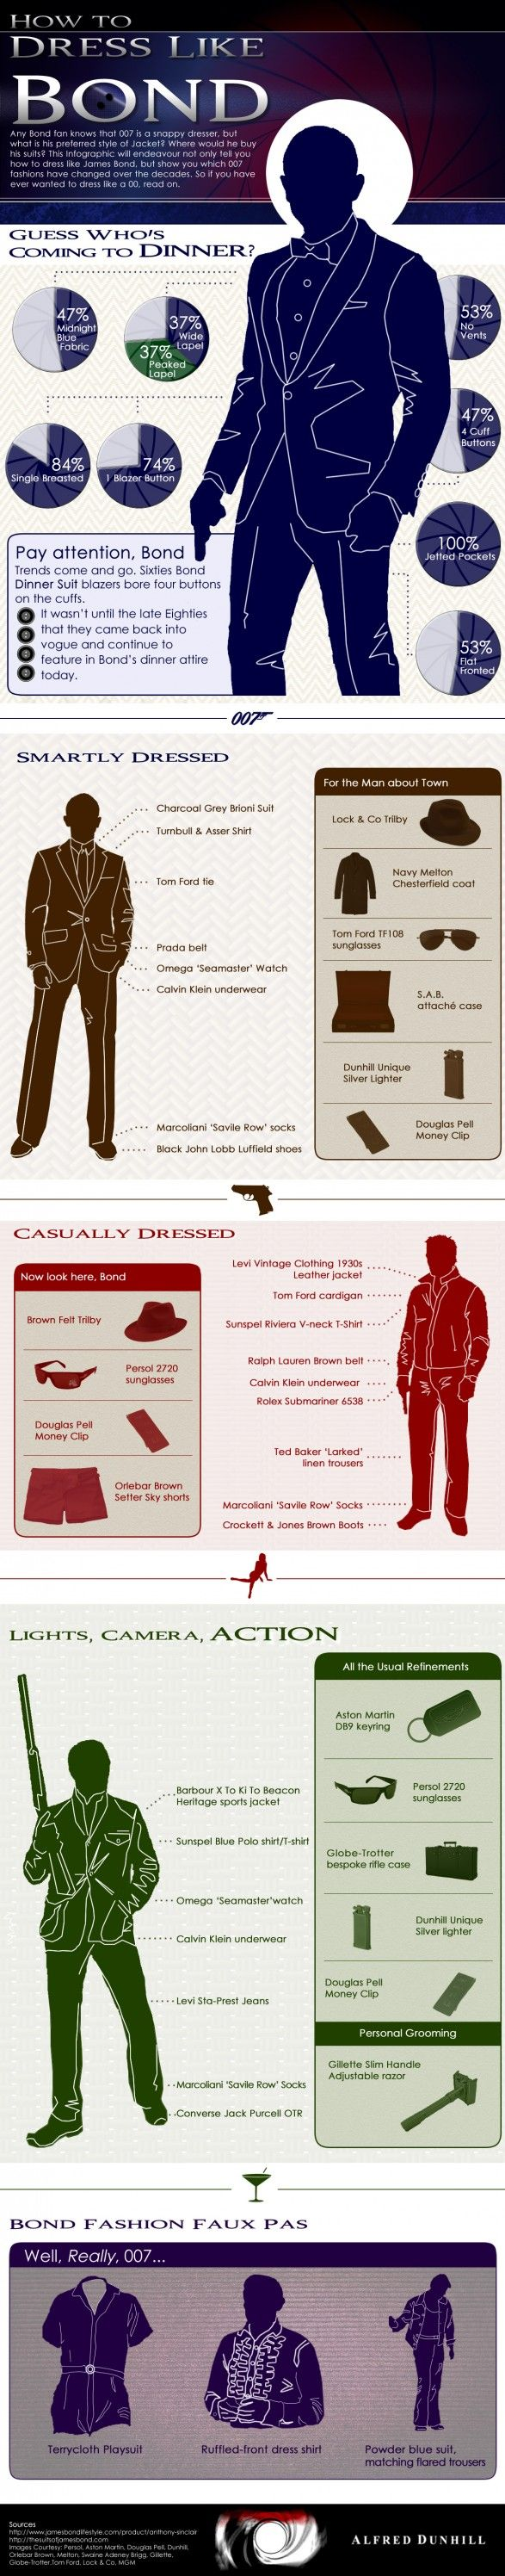 Dress like bond